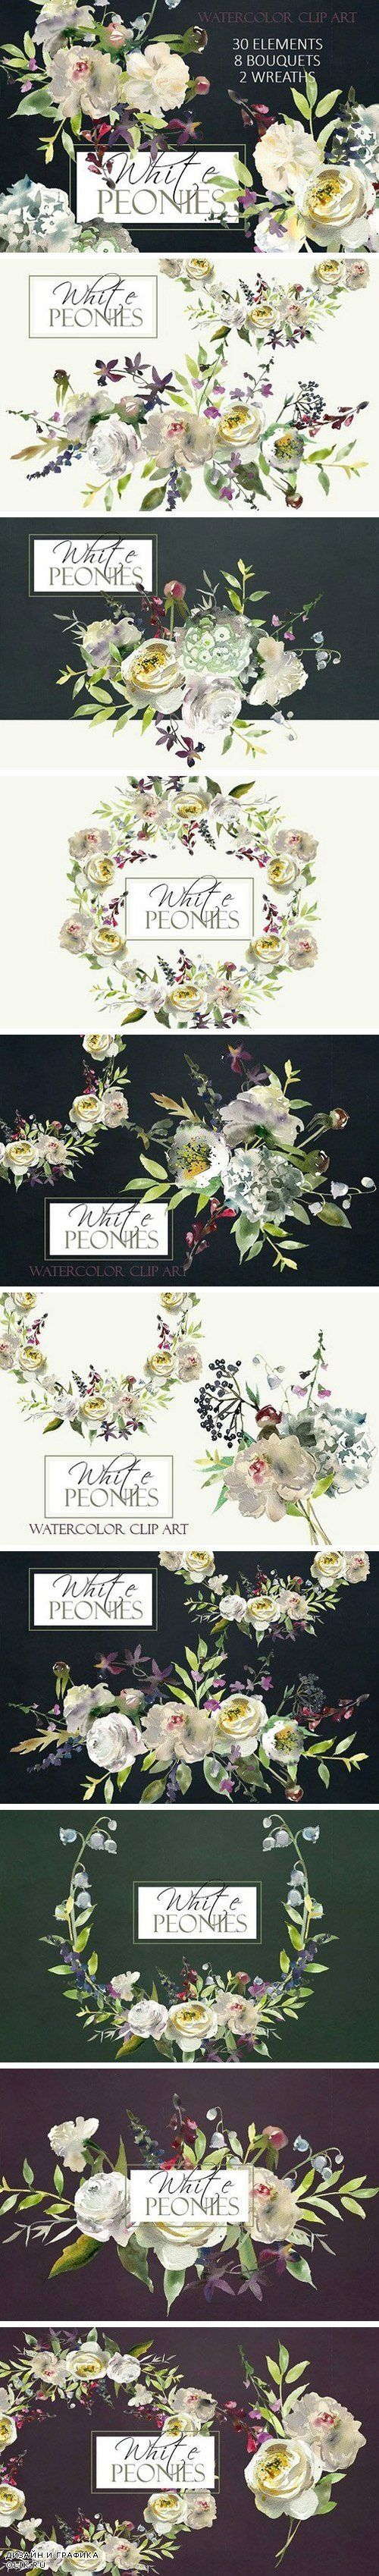 medium resolution of watercolor white flowers clipart 983330